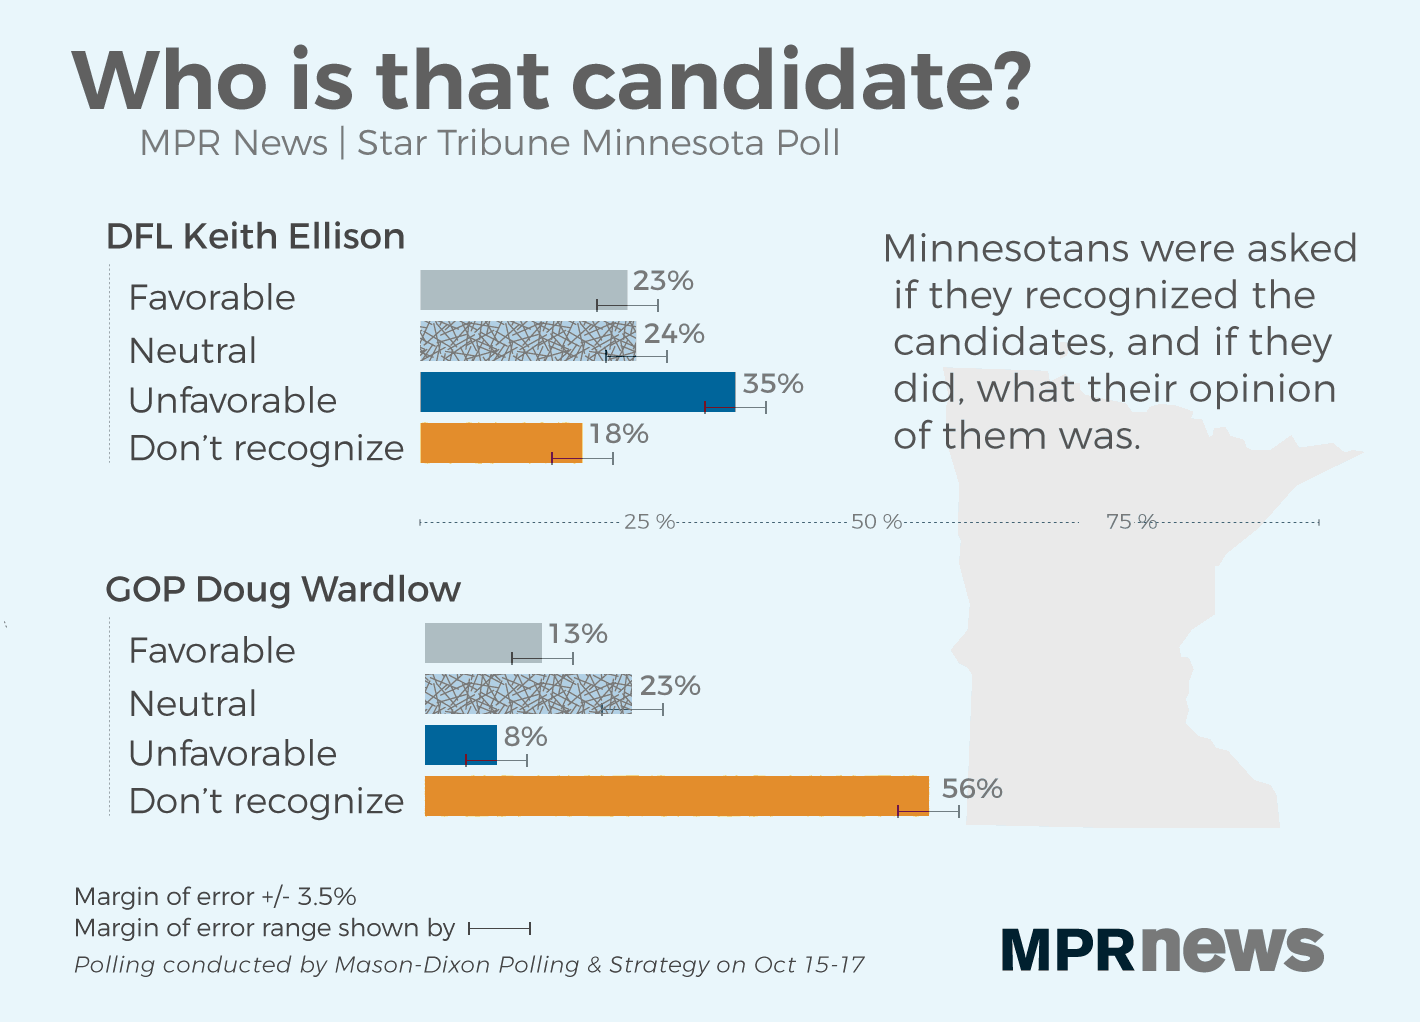 Unfavorability and lack of recognition for candidates